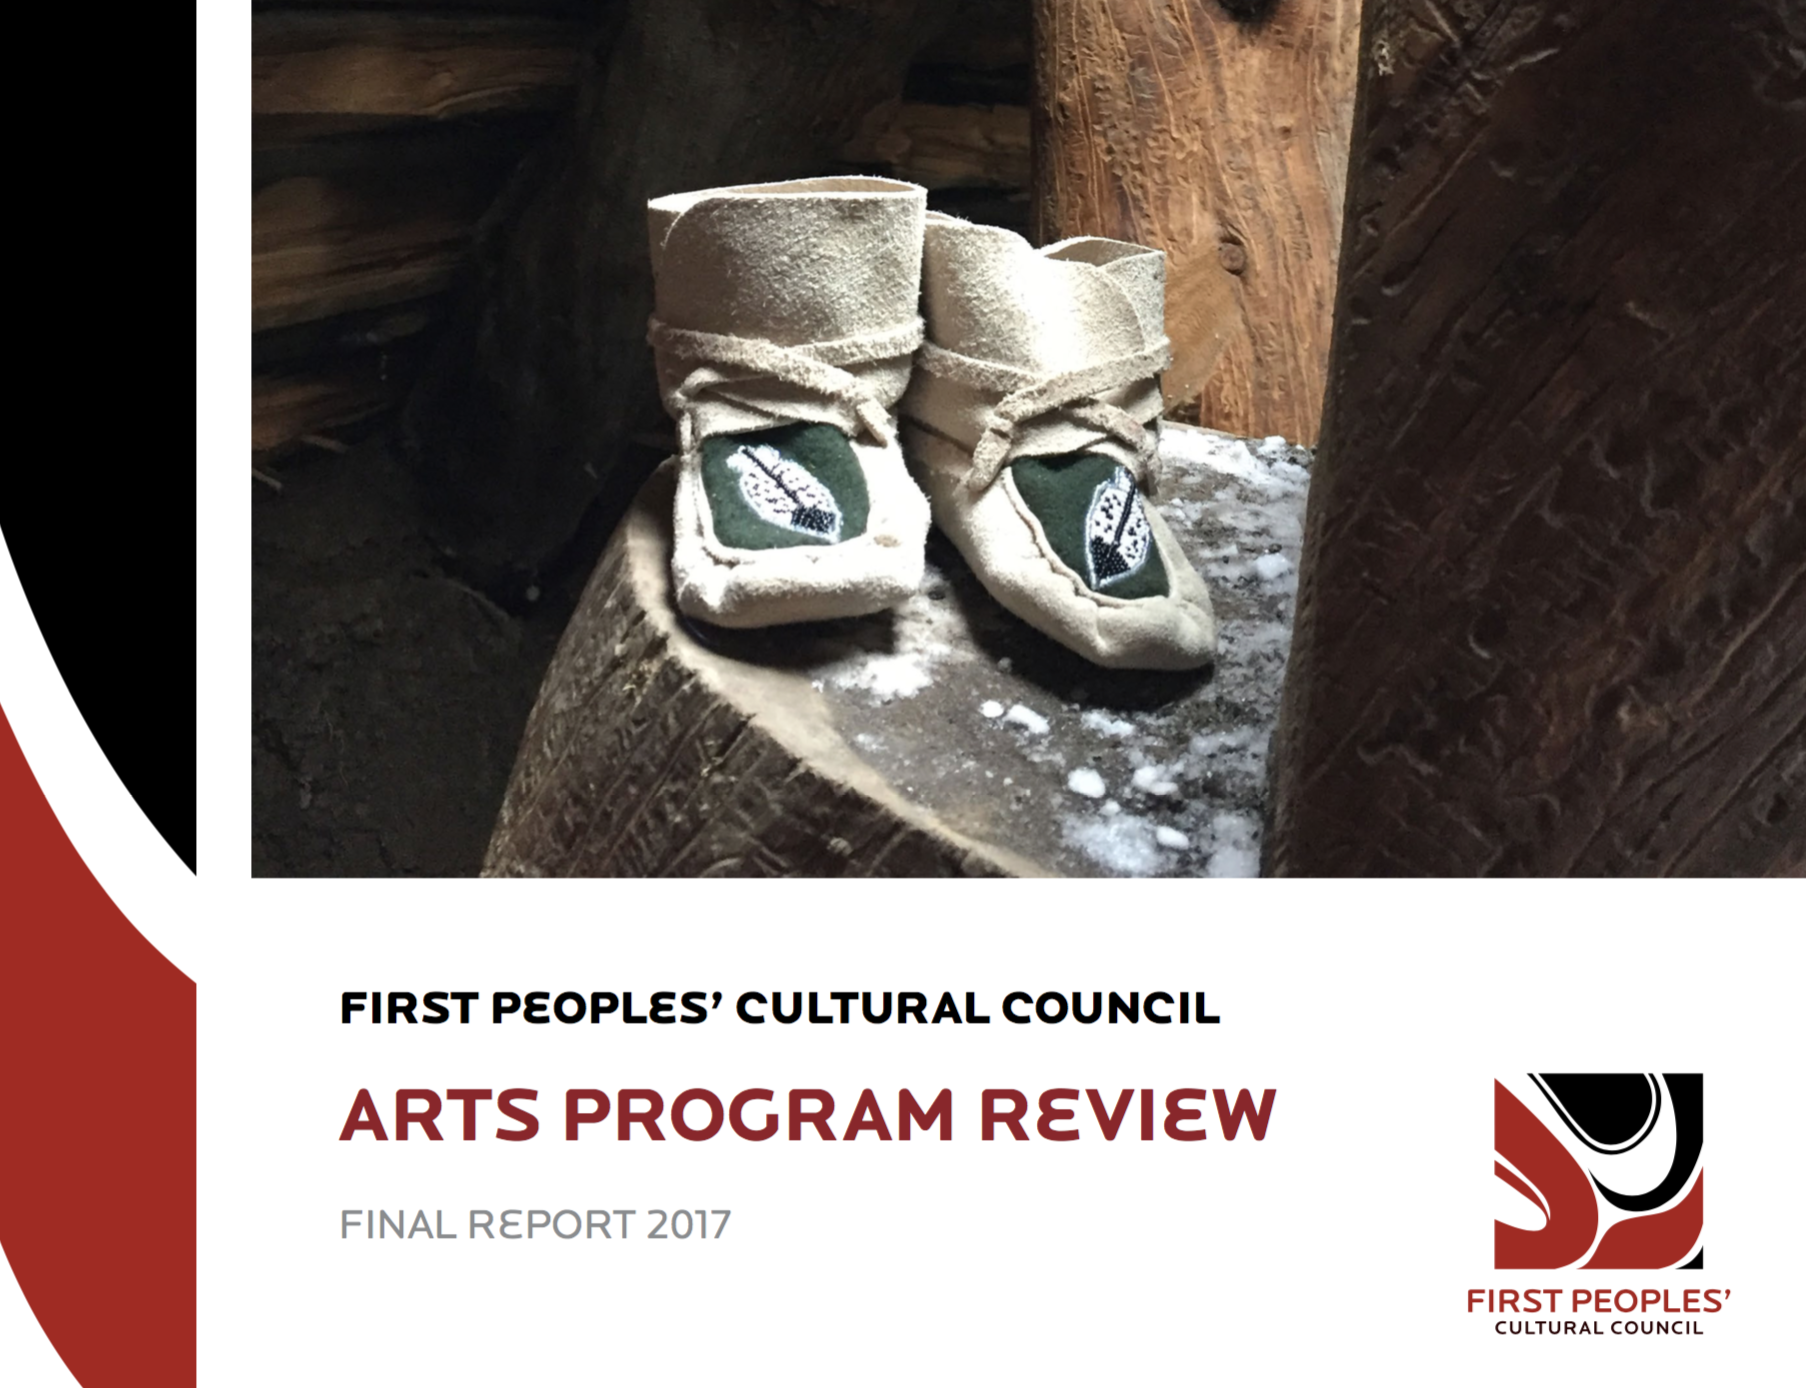 - First Peoples Cultural Council – Arts Program Review – Final Report 2017